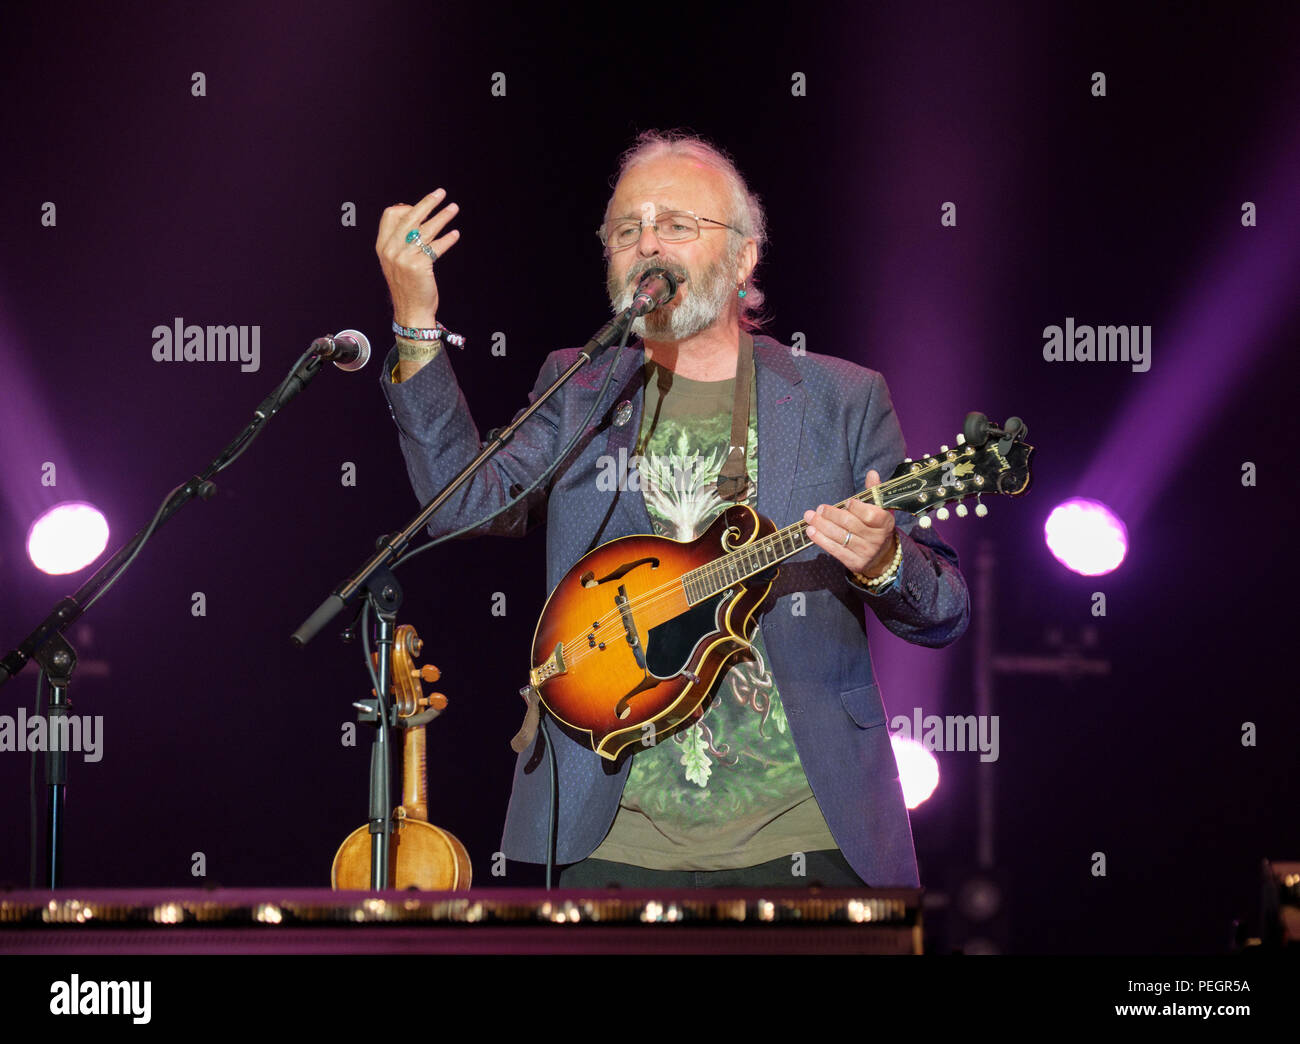 Fairport Convention performing at Fairport's Cropredy Convention, England, UK. August 11, 2018 - Stock Image